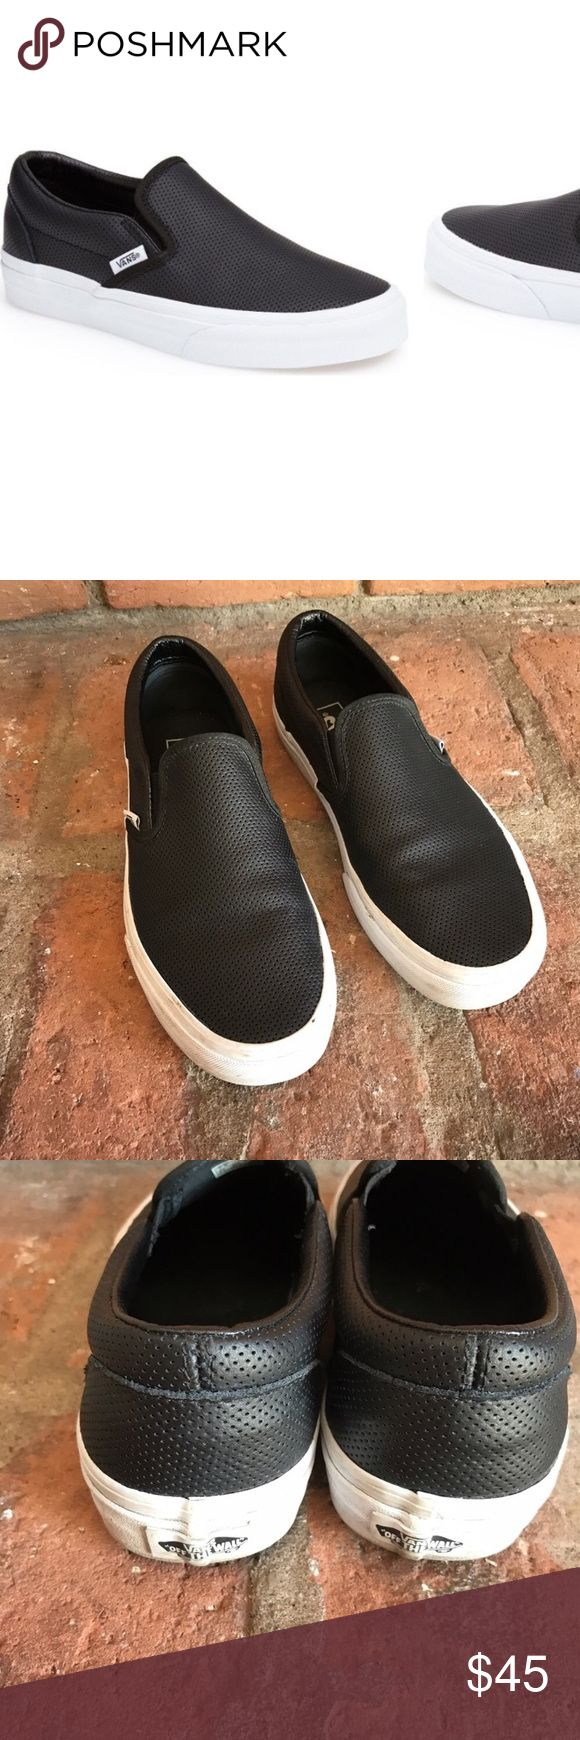 Vans original black slip on sneakers ❗️ In effect condition super clean inside and out super cute sneakers! Vans Shoes Sneakers